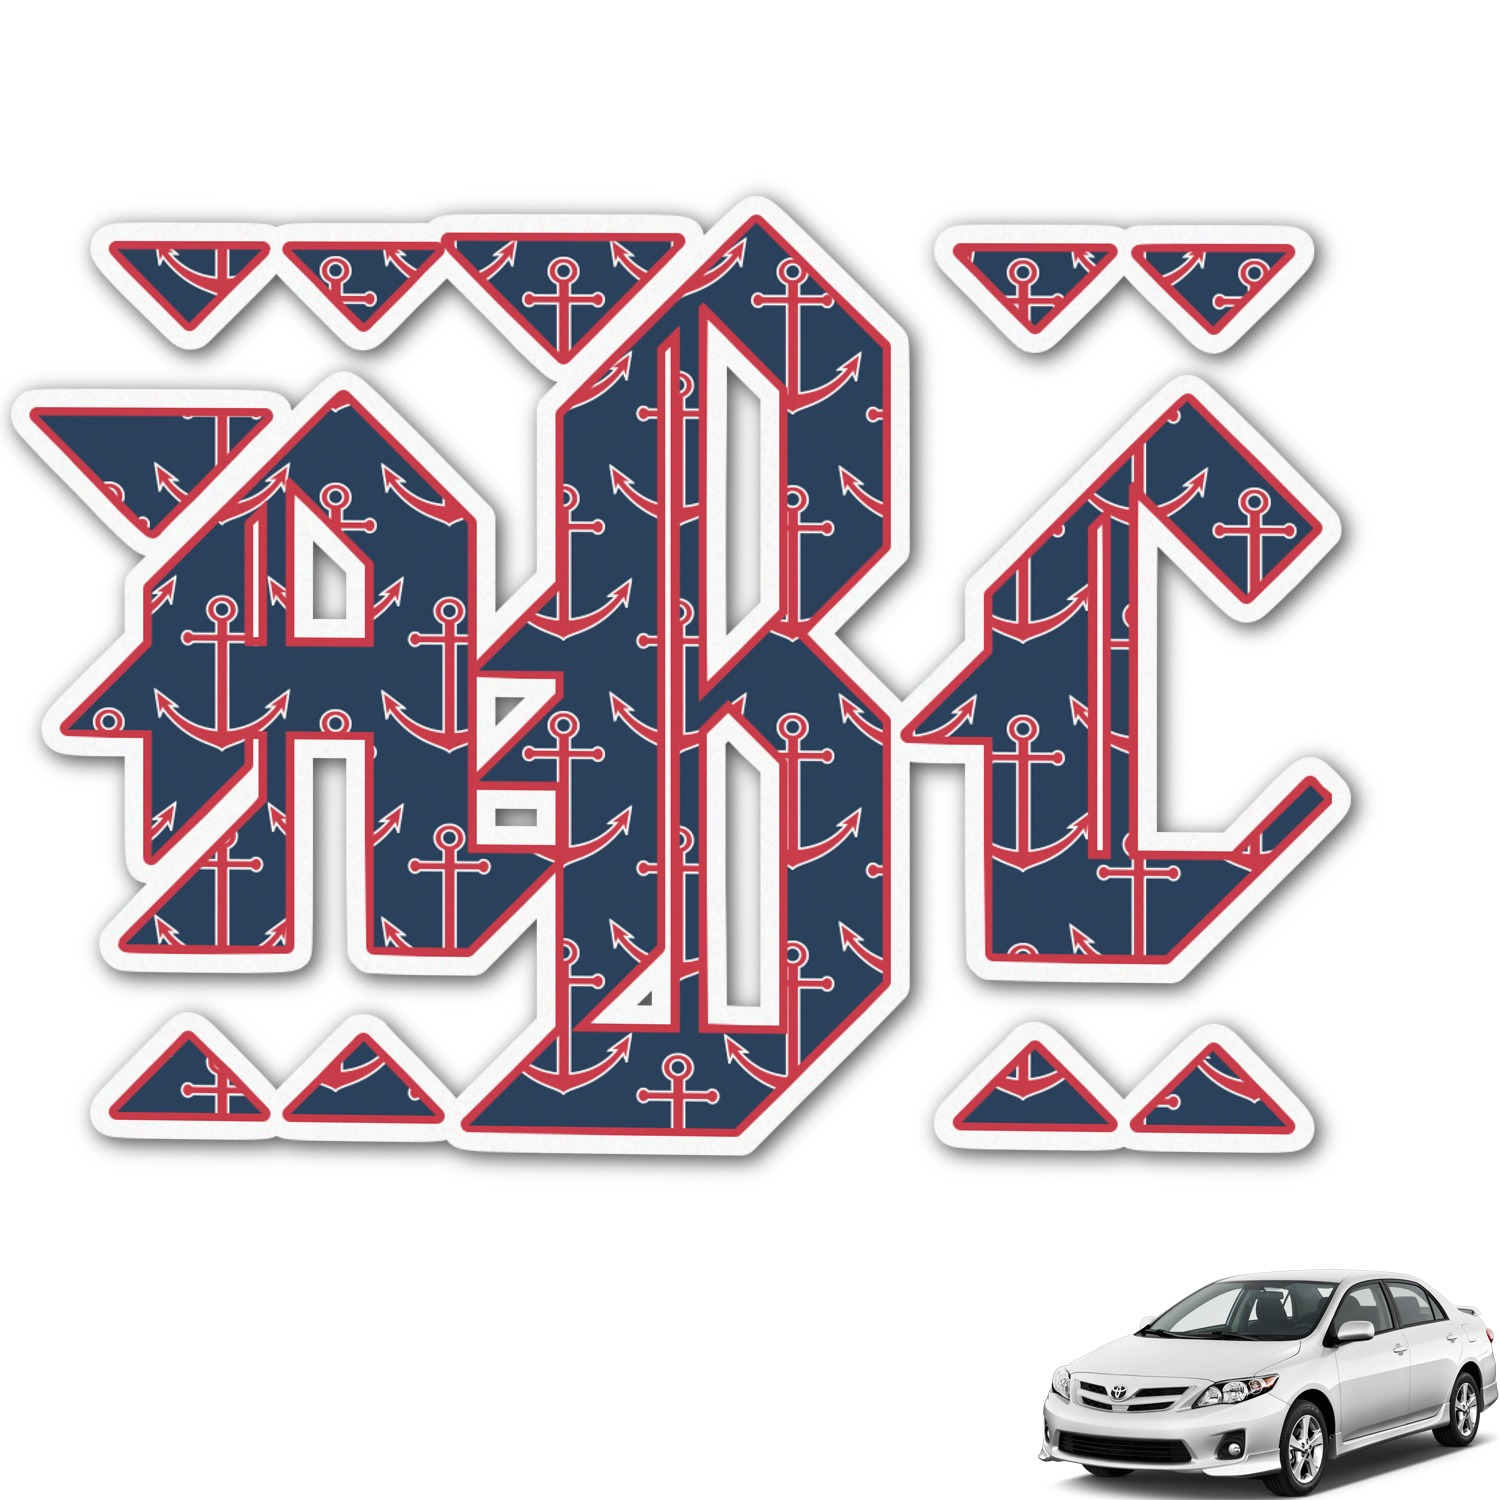 All Anchors Monogram Car Decal Personalized YouCustomizeIt - Anchor monogram car decal